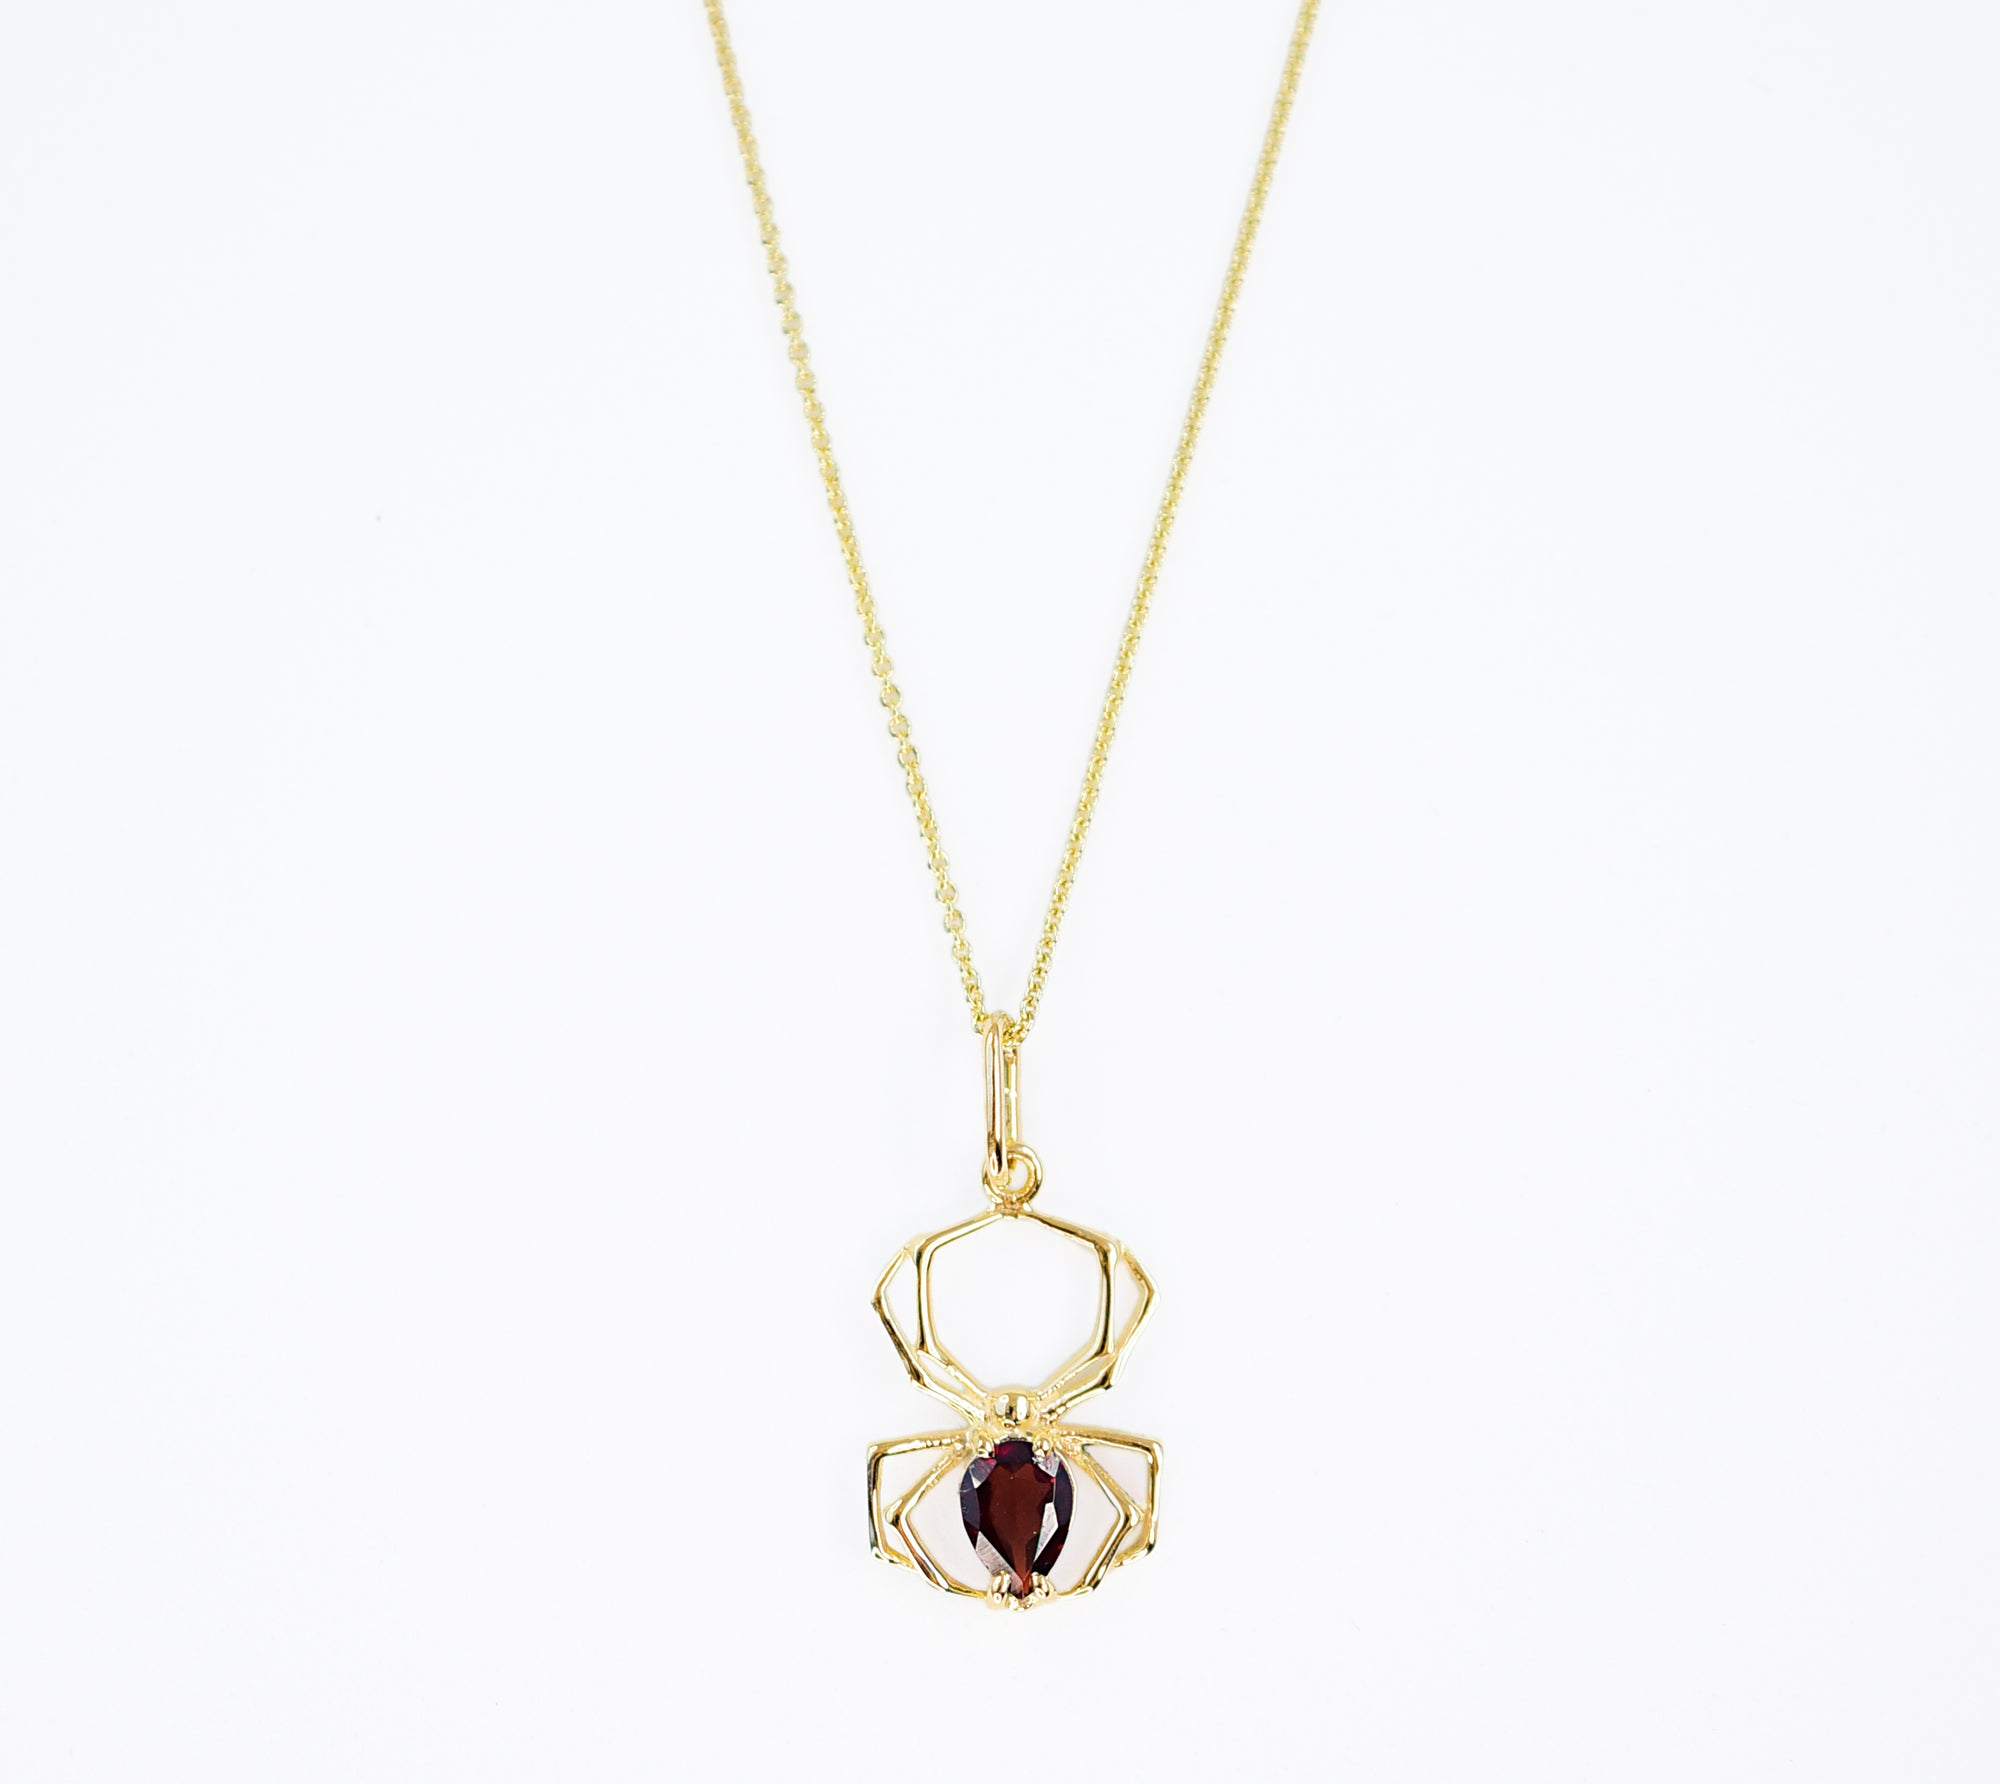 14K Yellow Gold and Garnet Spider Pendant